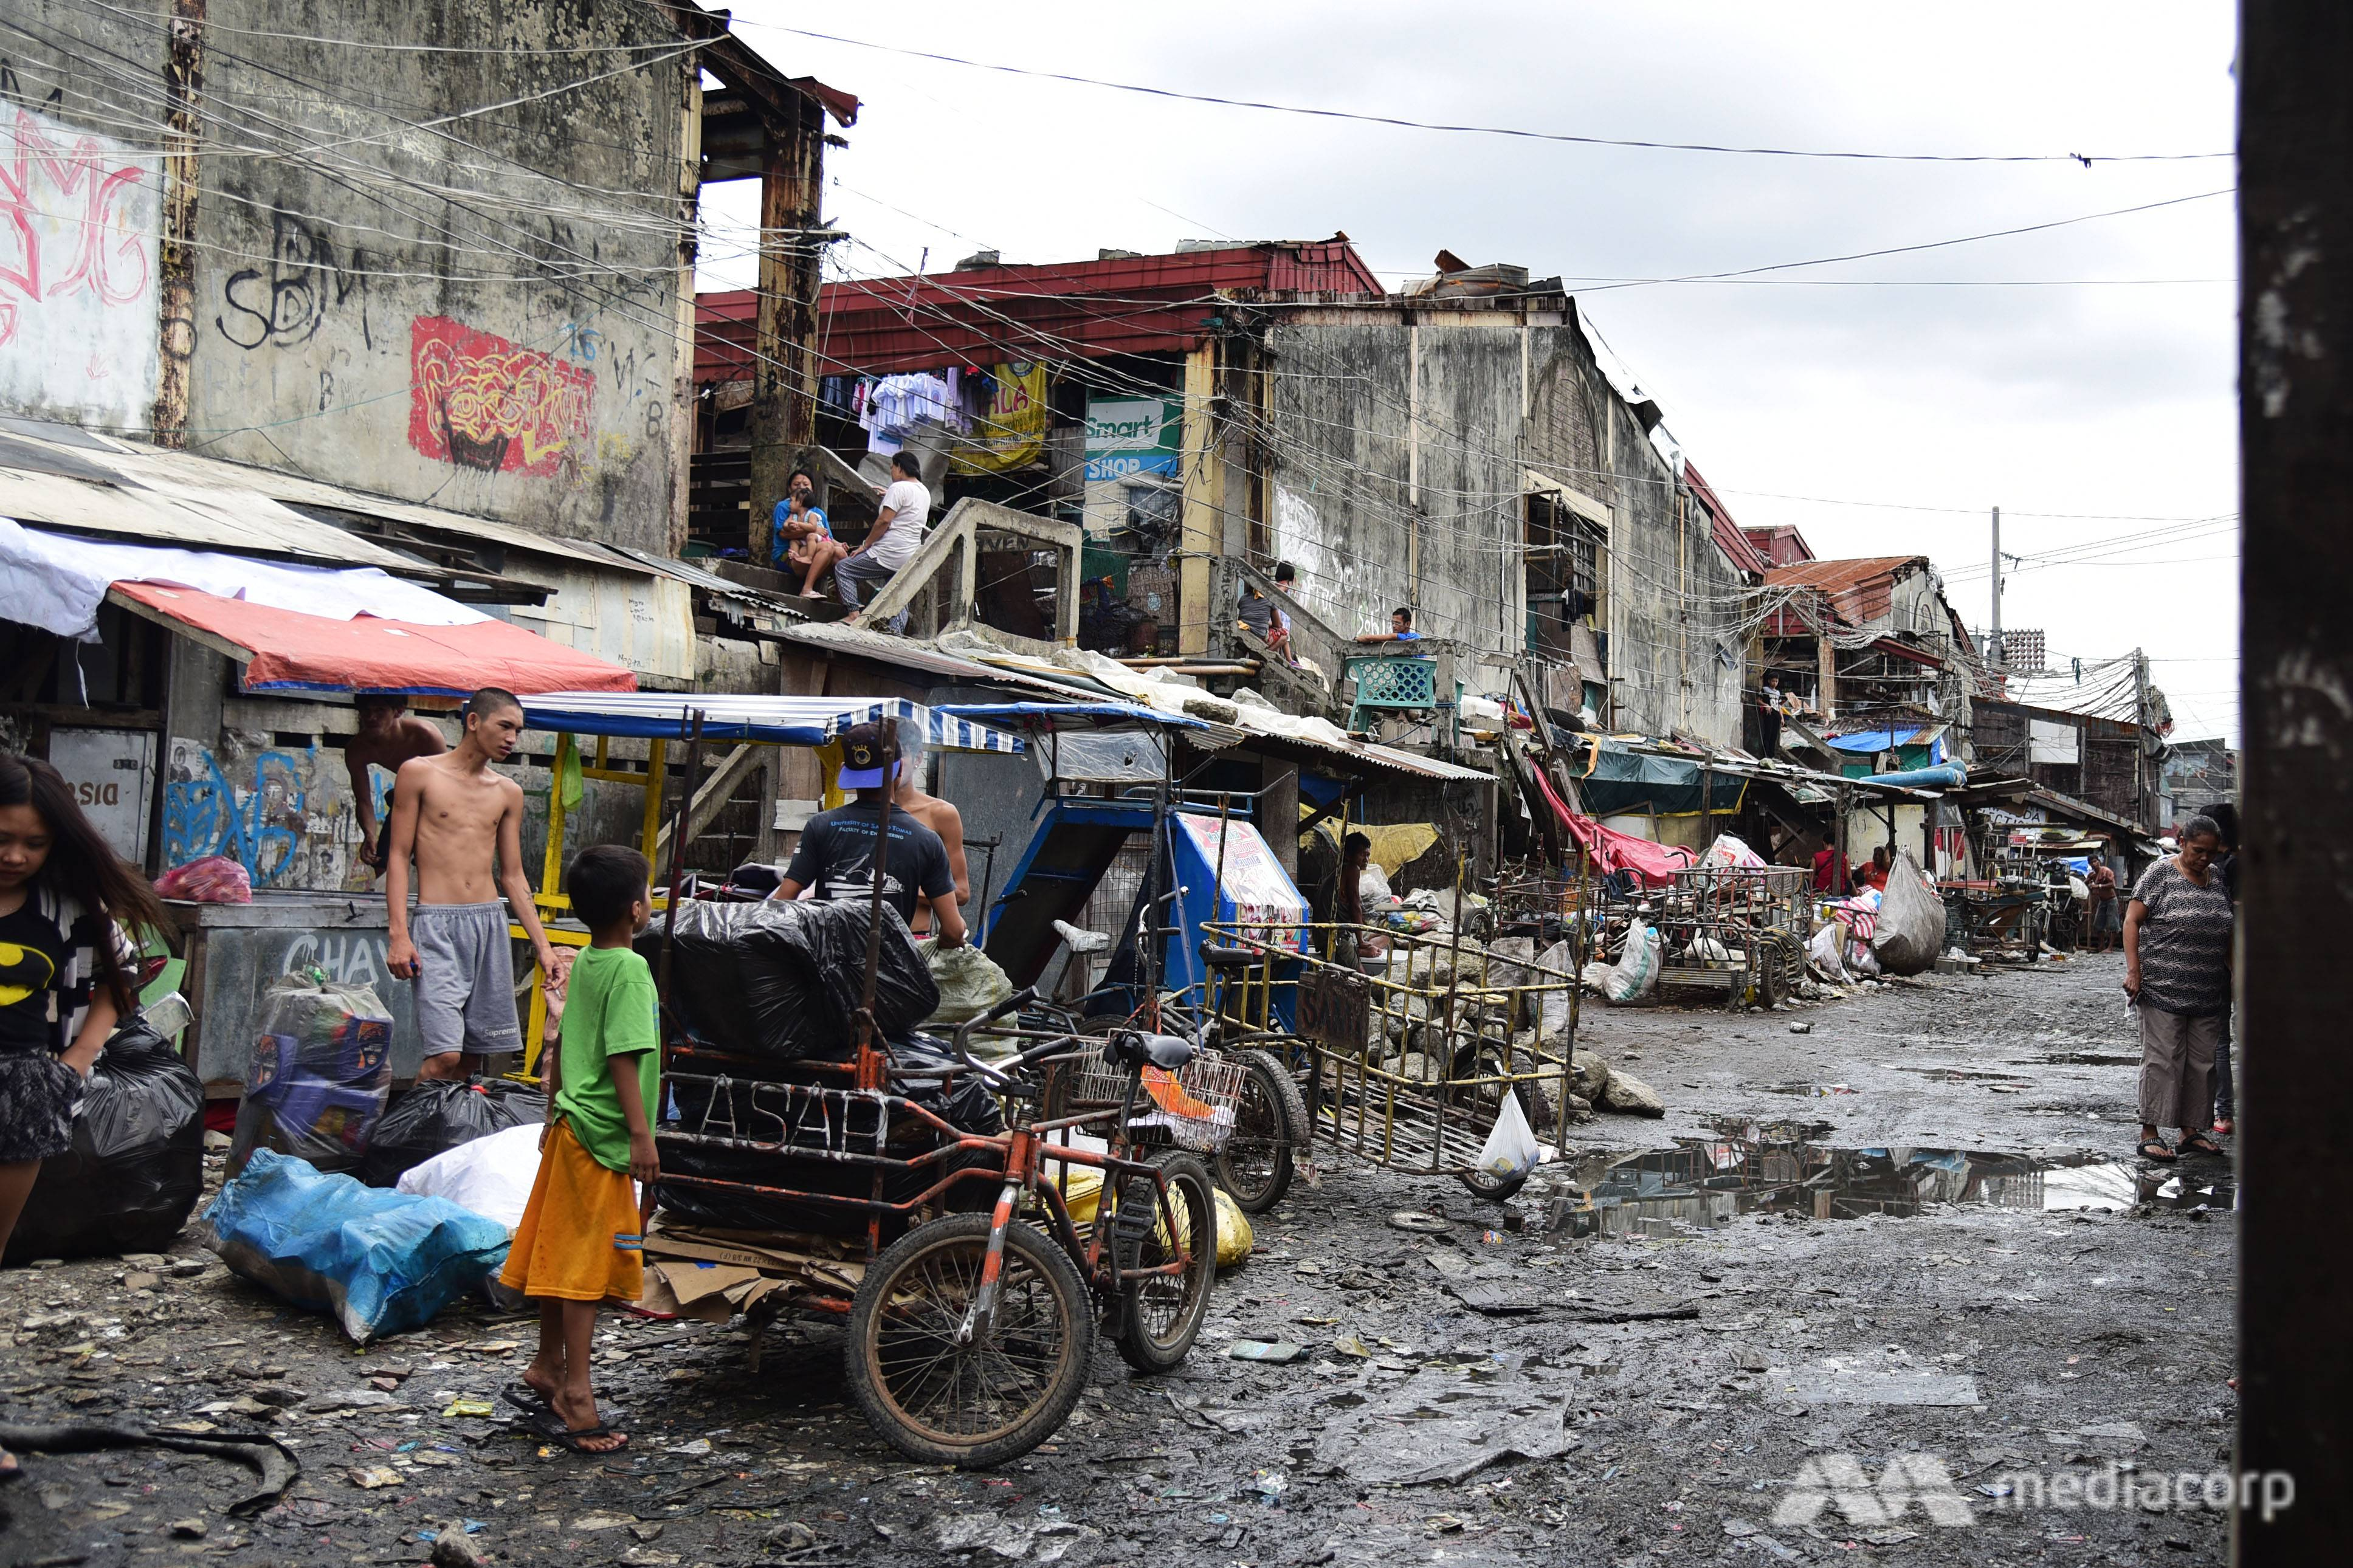 Kidney for sale: Inside Philippines' illegal organ trade